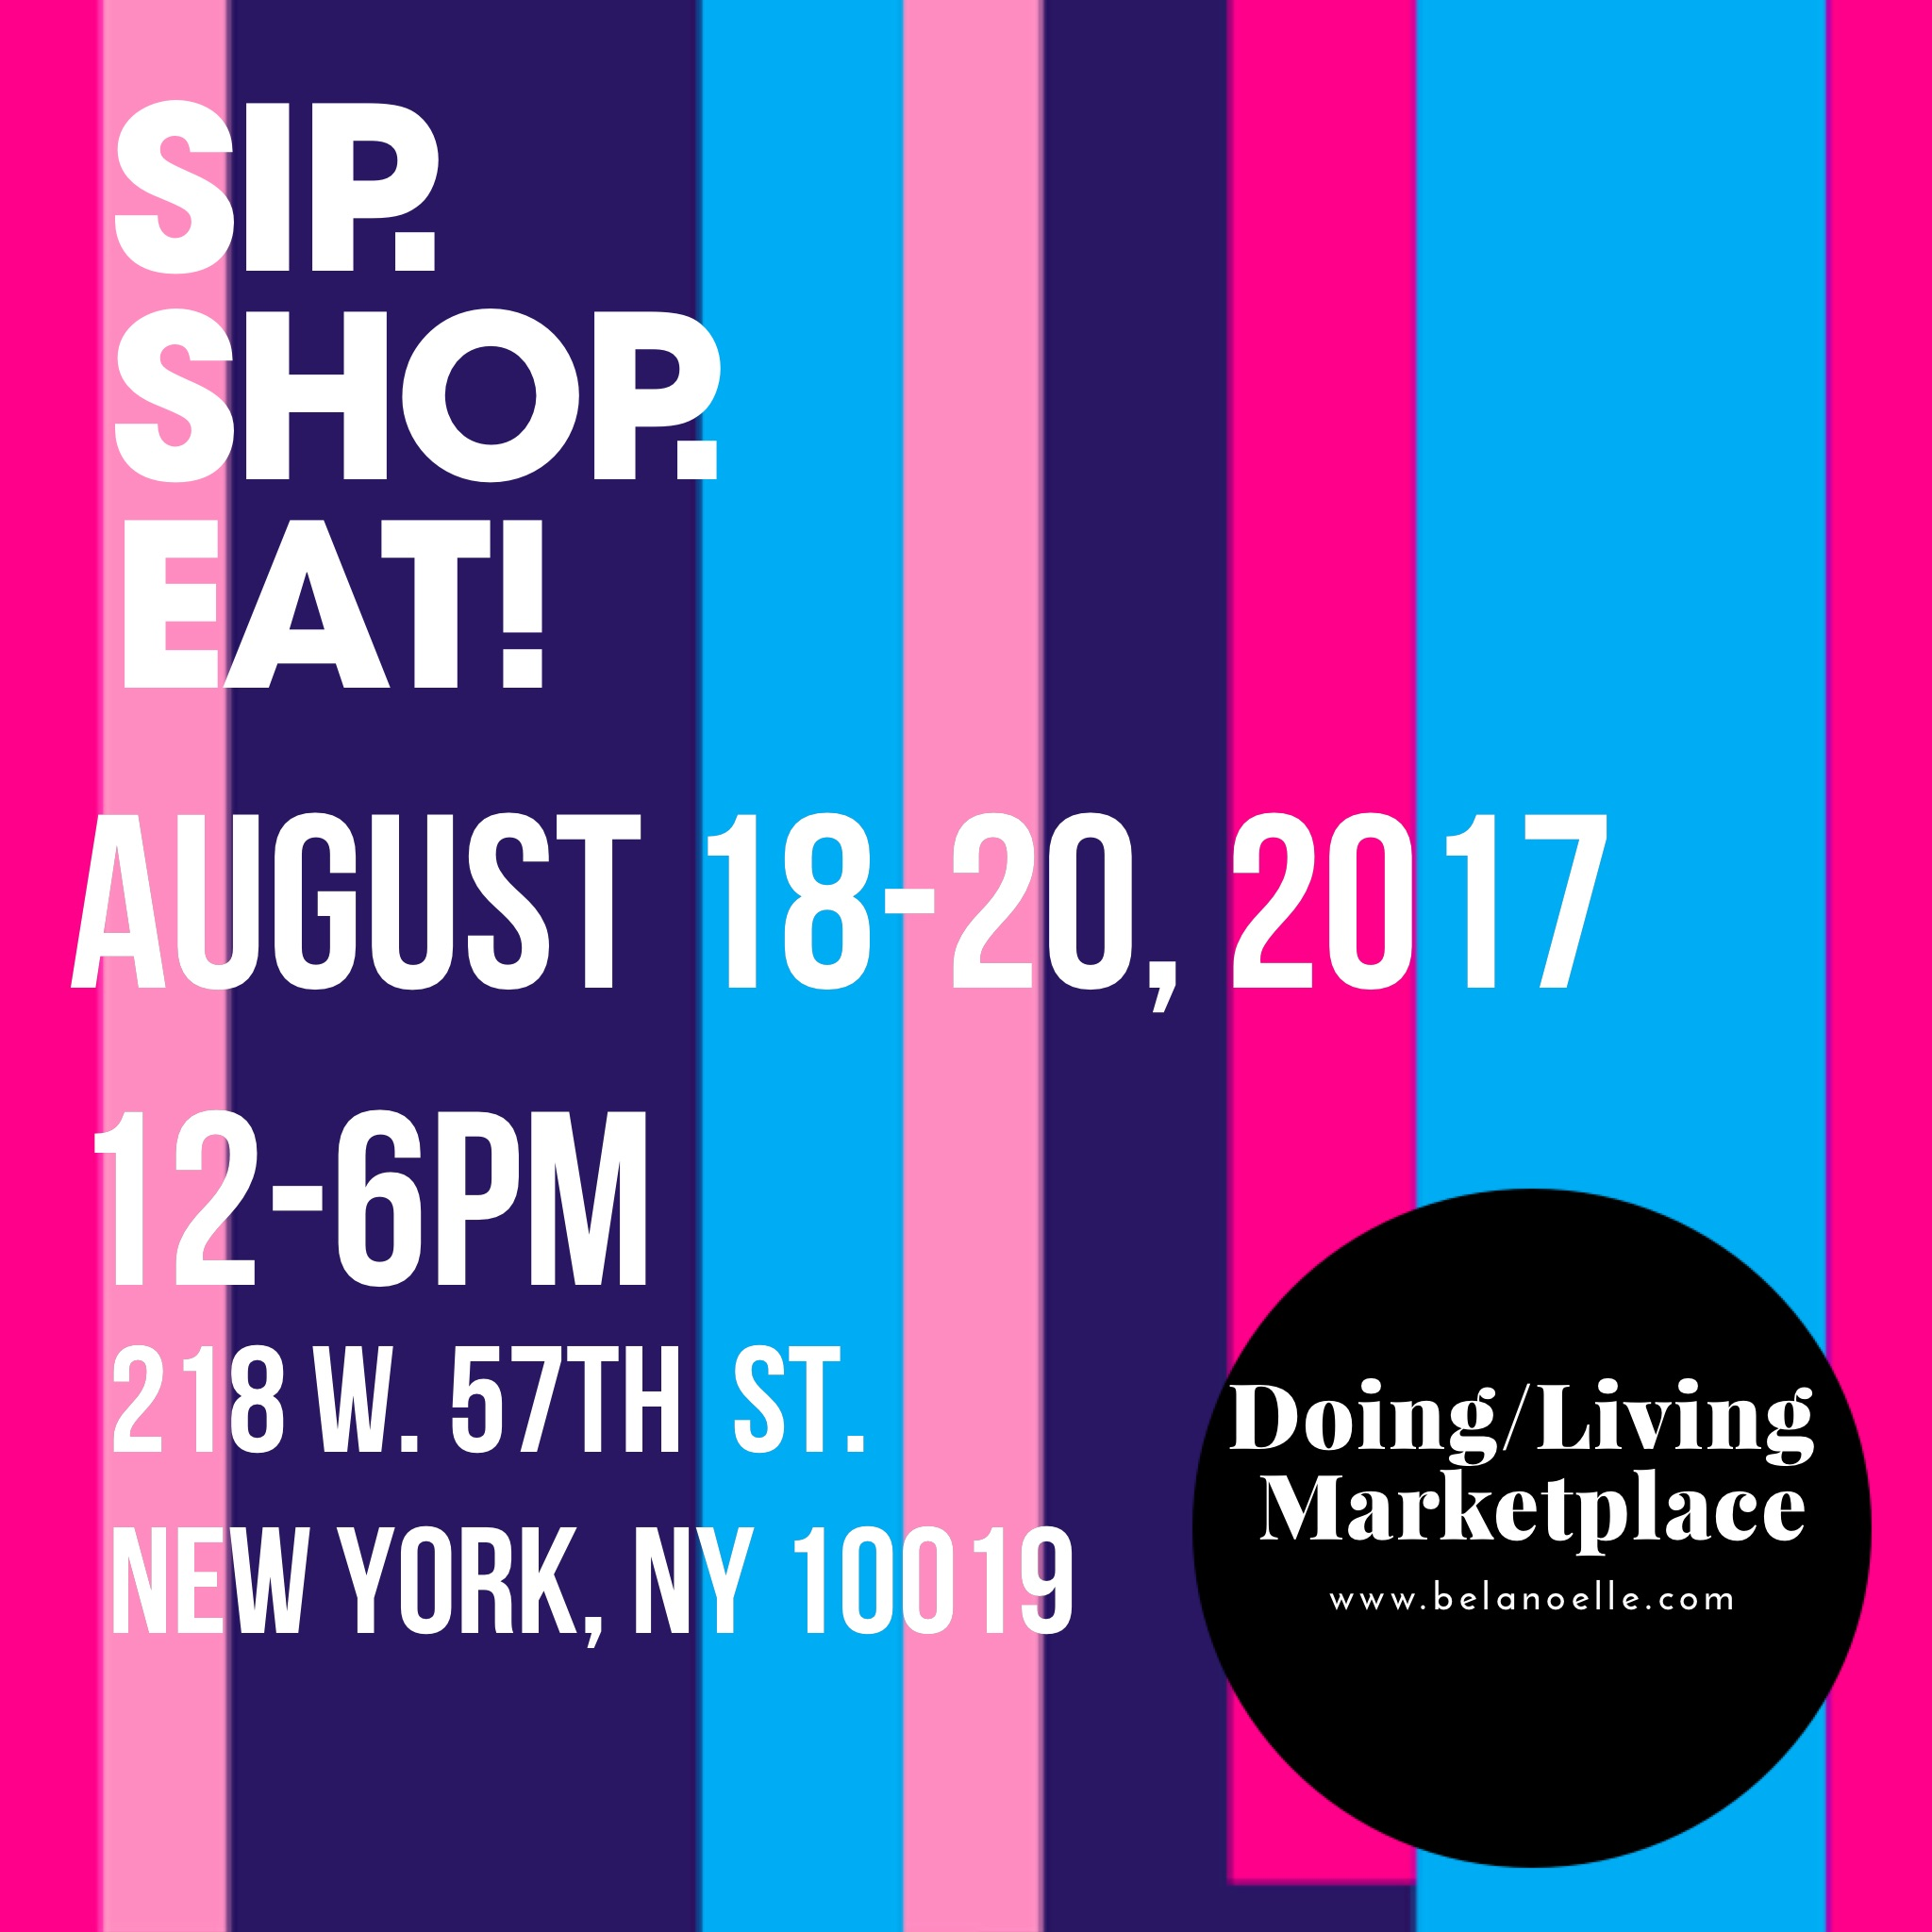 SIP. SHOP. EAT! at The Collective Market in Midtown